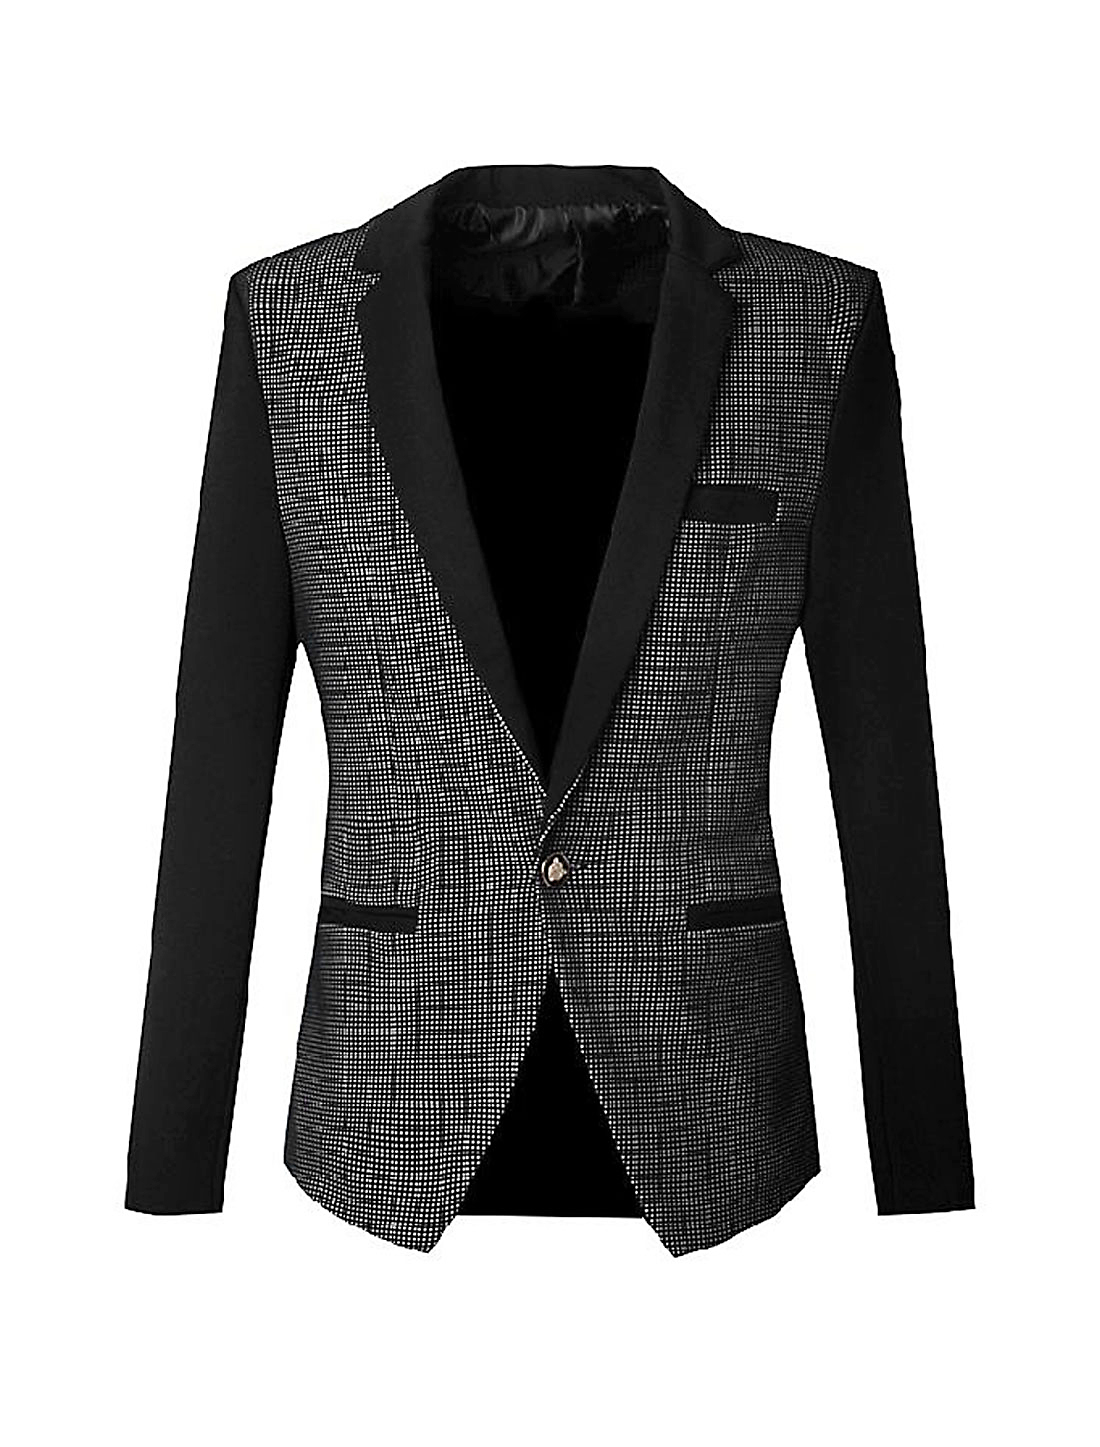 Men Plaids Pattern One Button Closure Slim Blazer Jacket Black S